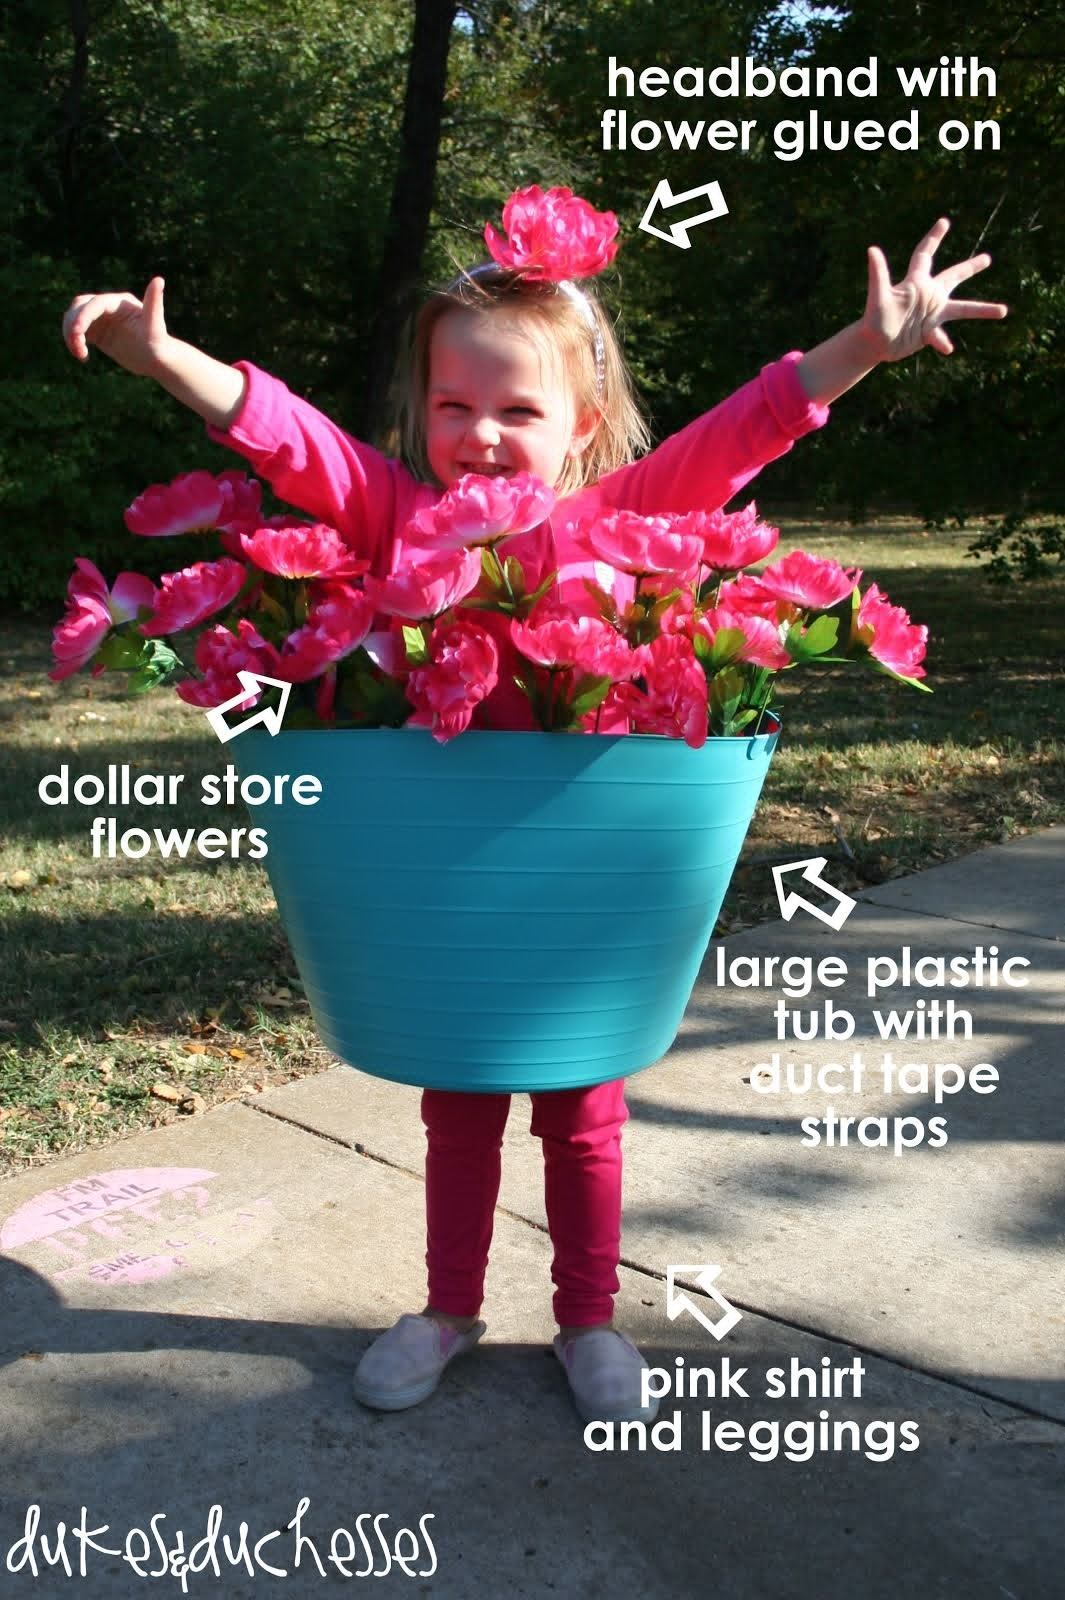 http://cutediyprojects.com/wp-content/uploads/2015/08/A-Flower-Pot-Costume.jpg